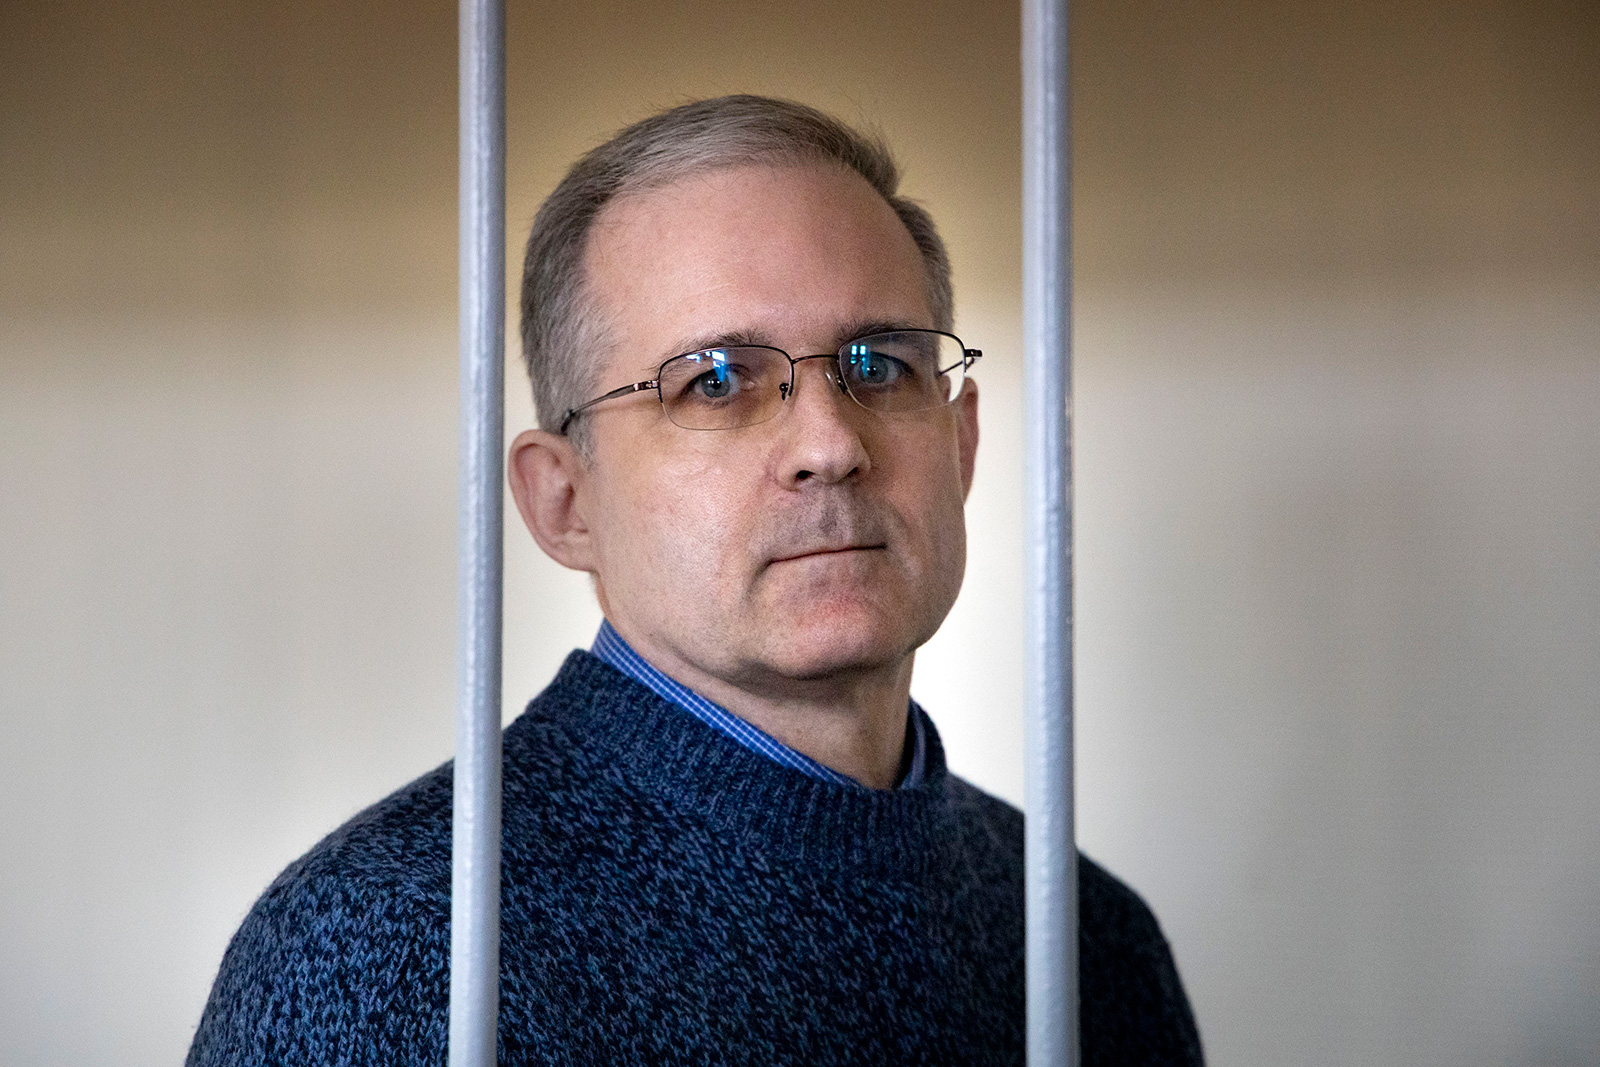 Paul Whelan stands in a holding cell as he waits for a hearing in a court room in Moscow, Russia, on August 23, 2019.